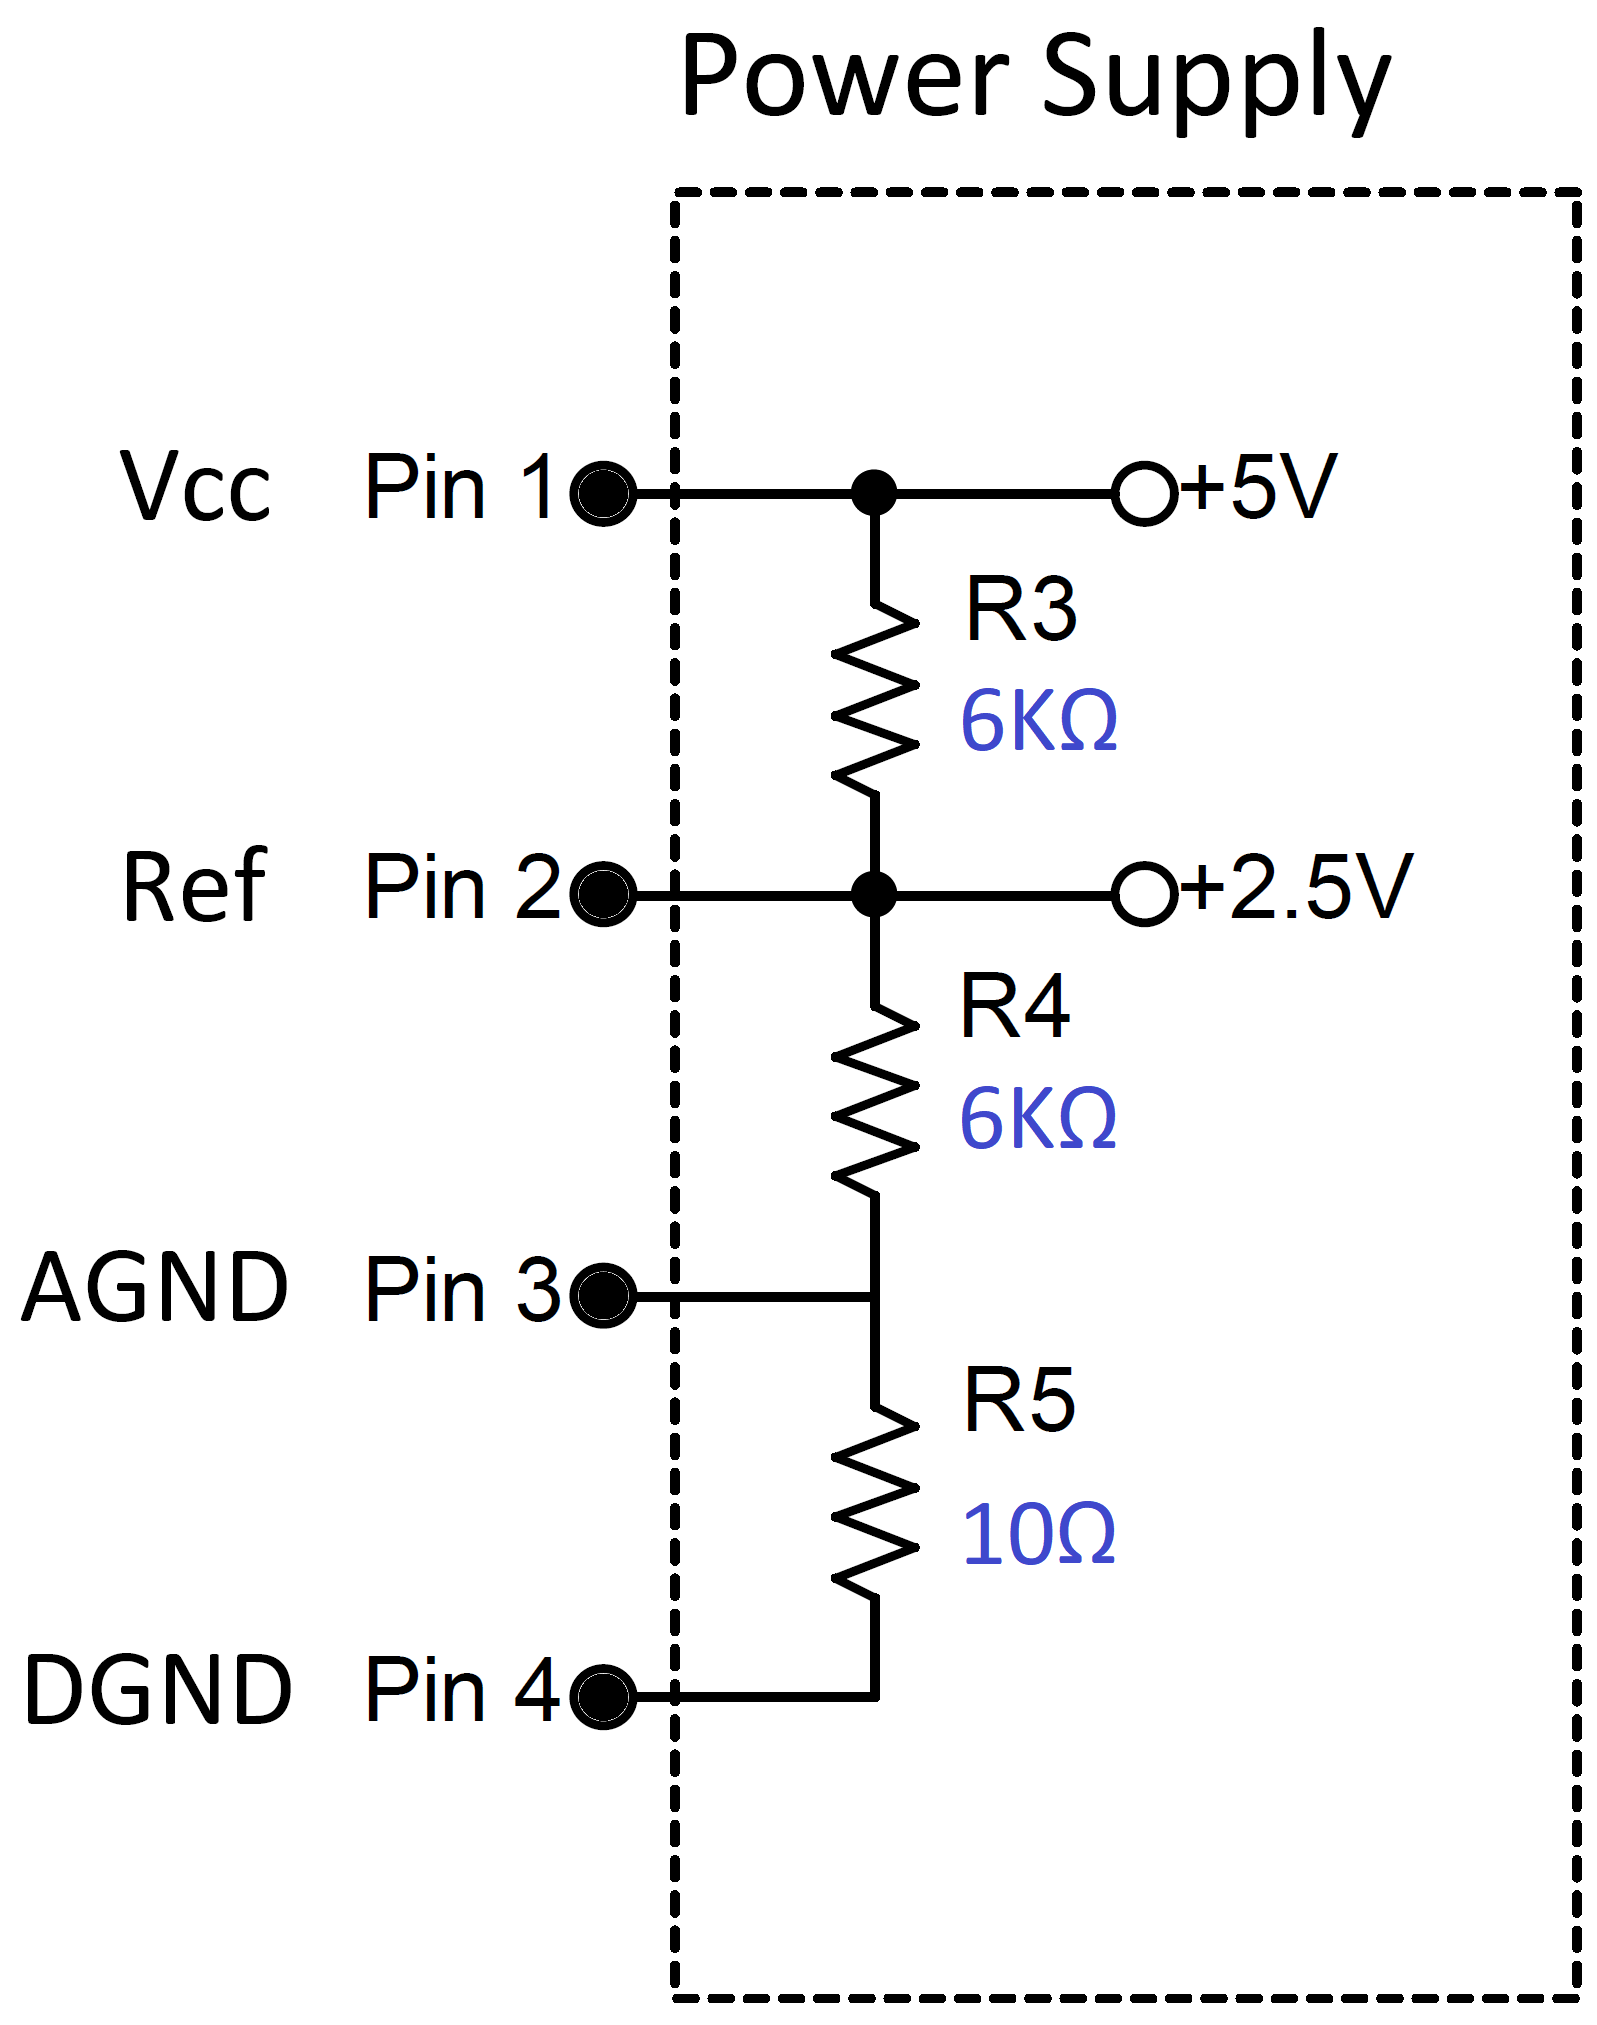 Electrosmash Pt2399 Analysis Echo Effect With Ic Schematic Power Supply